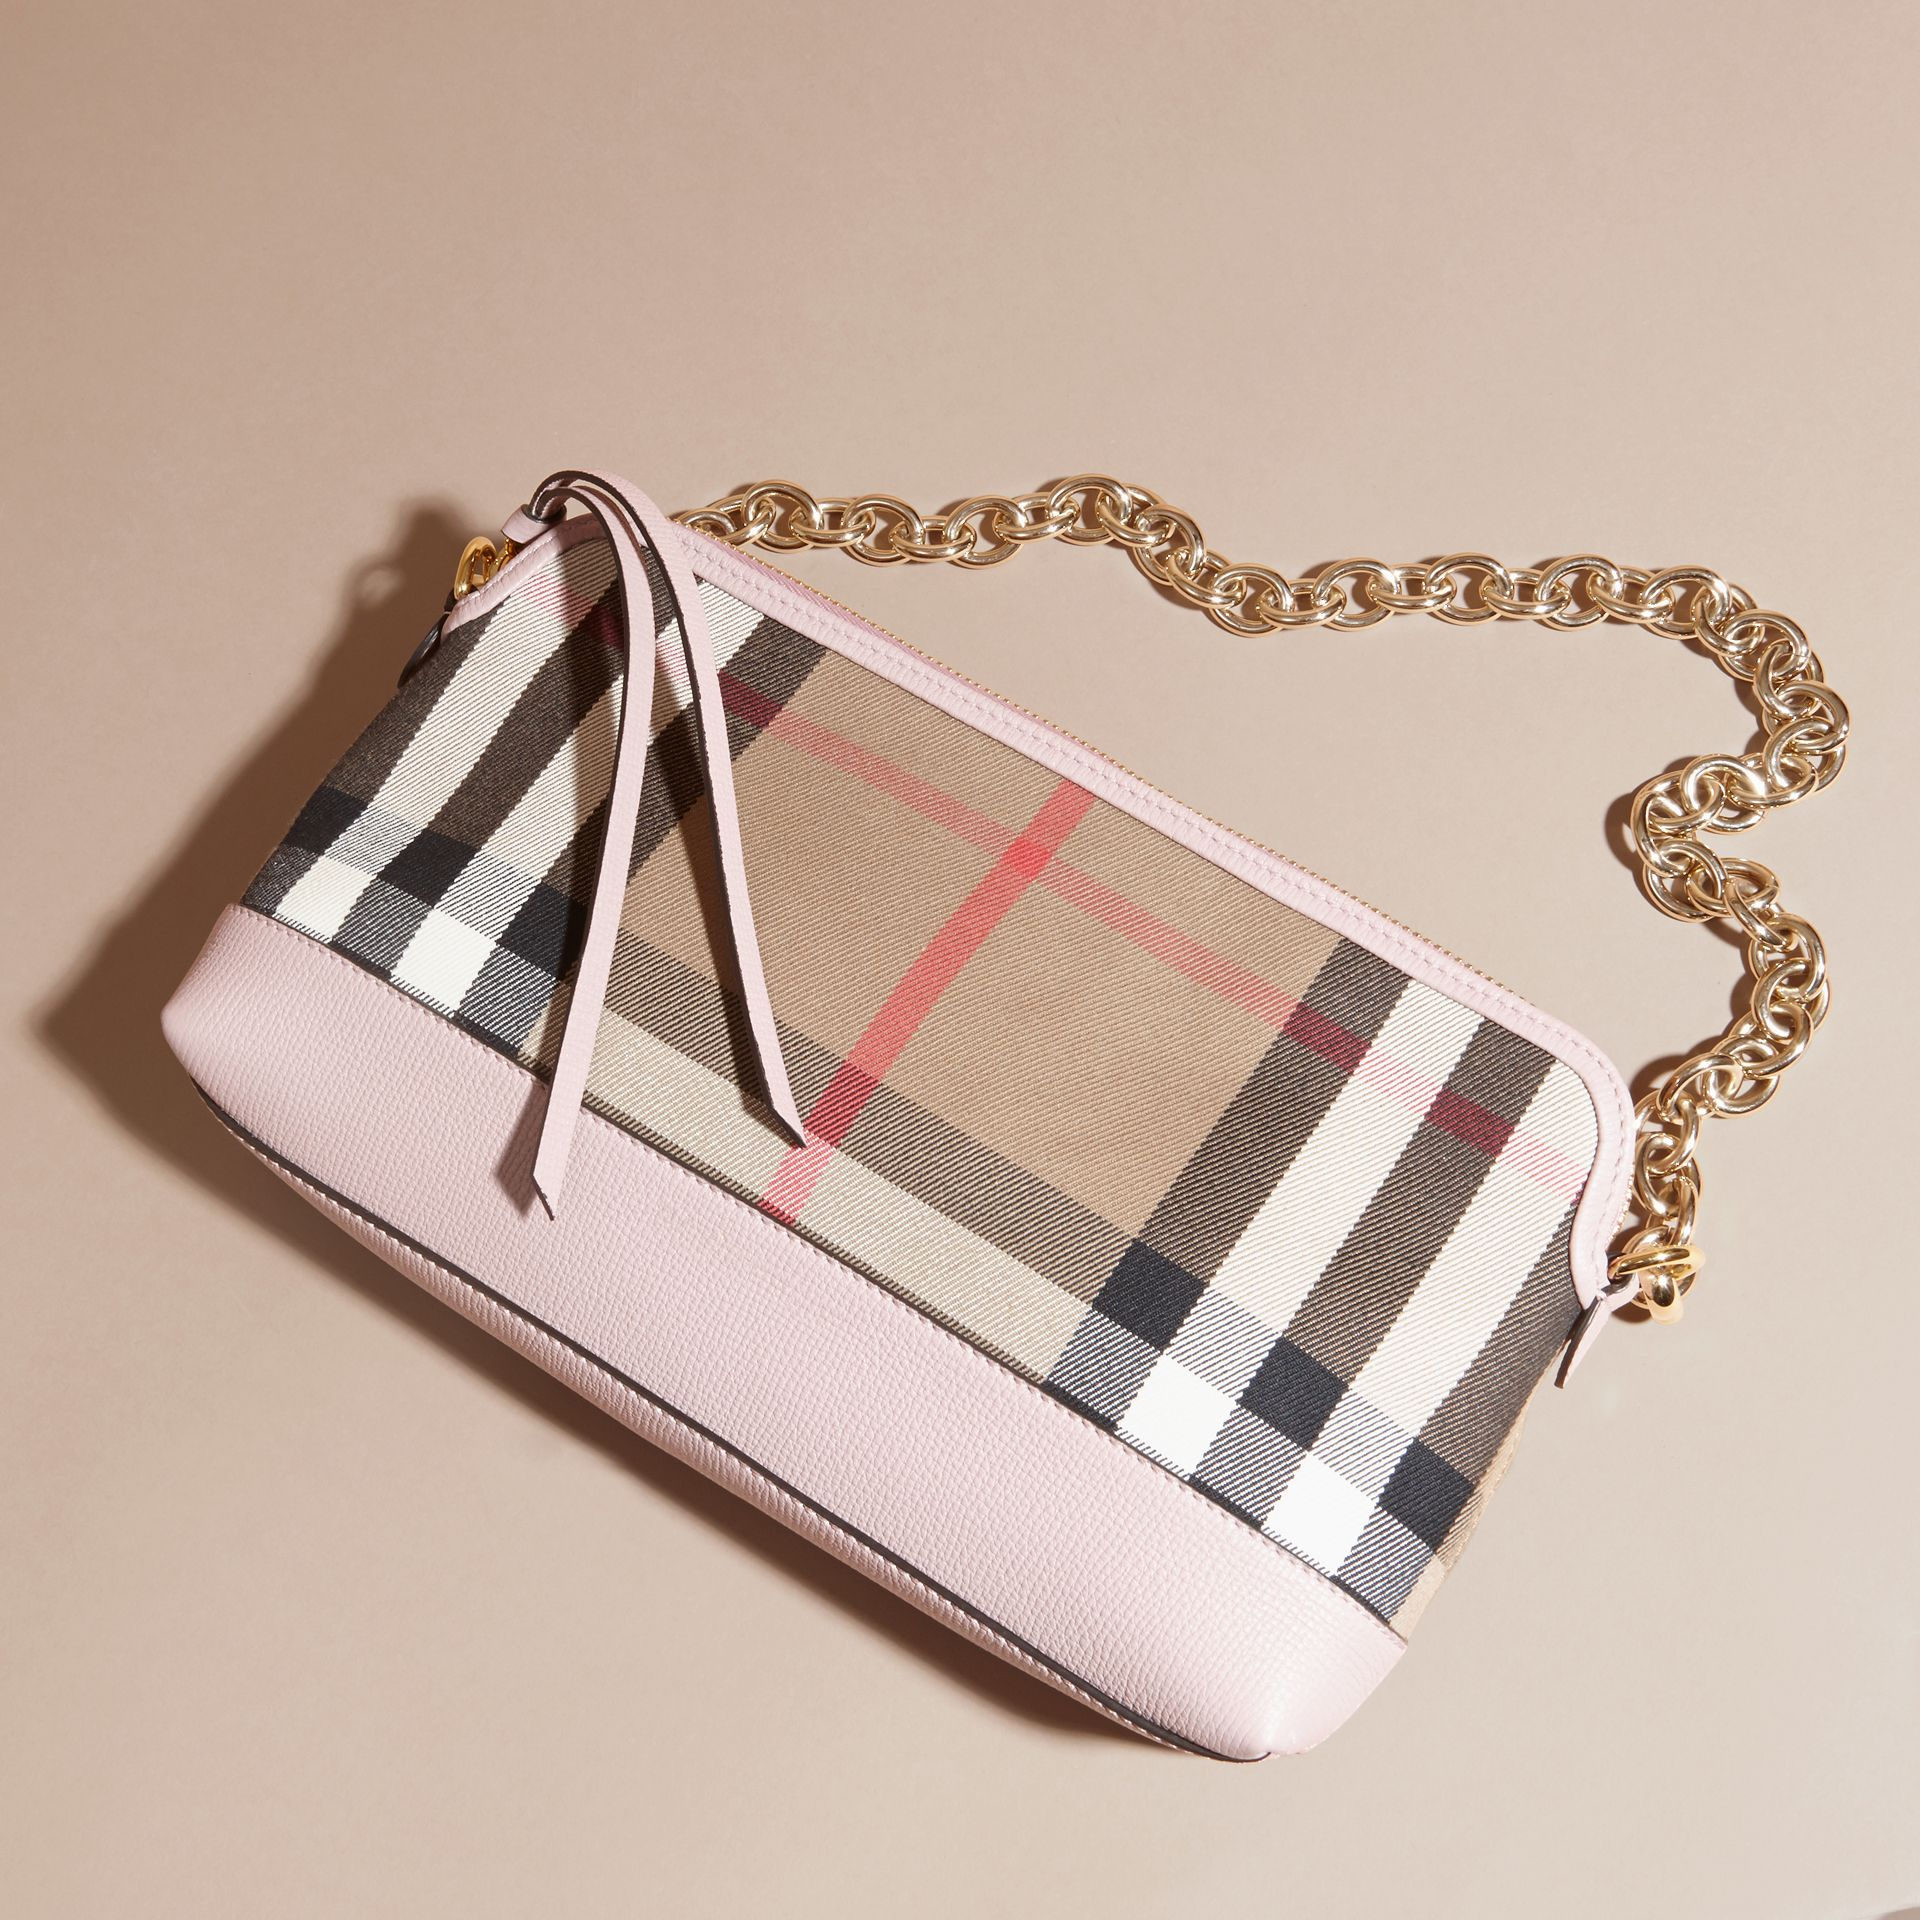 House Check and Leather Clutch Bag in Pale Orchid - Women | Burberry United Kingdom - gallery image 8